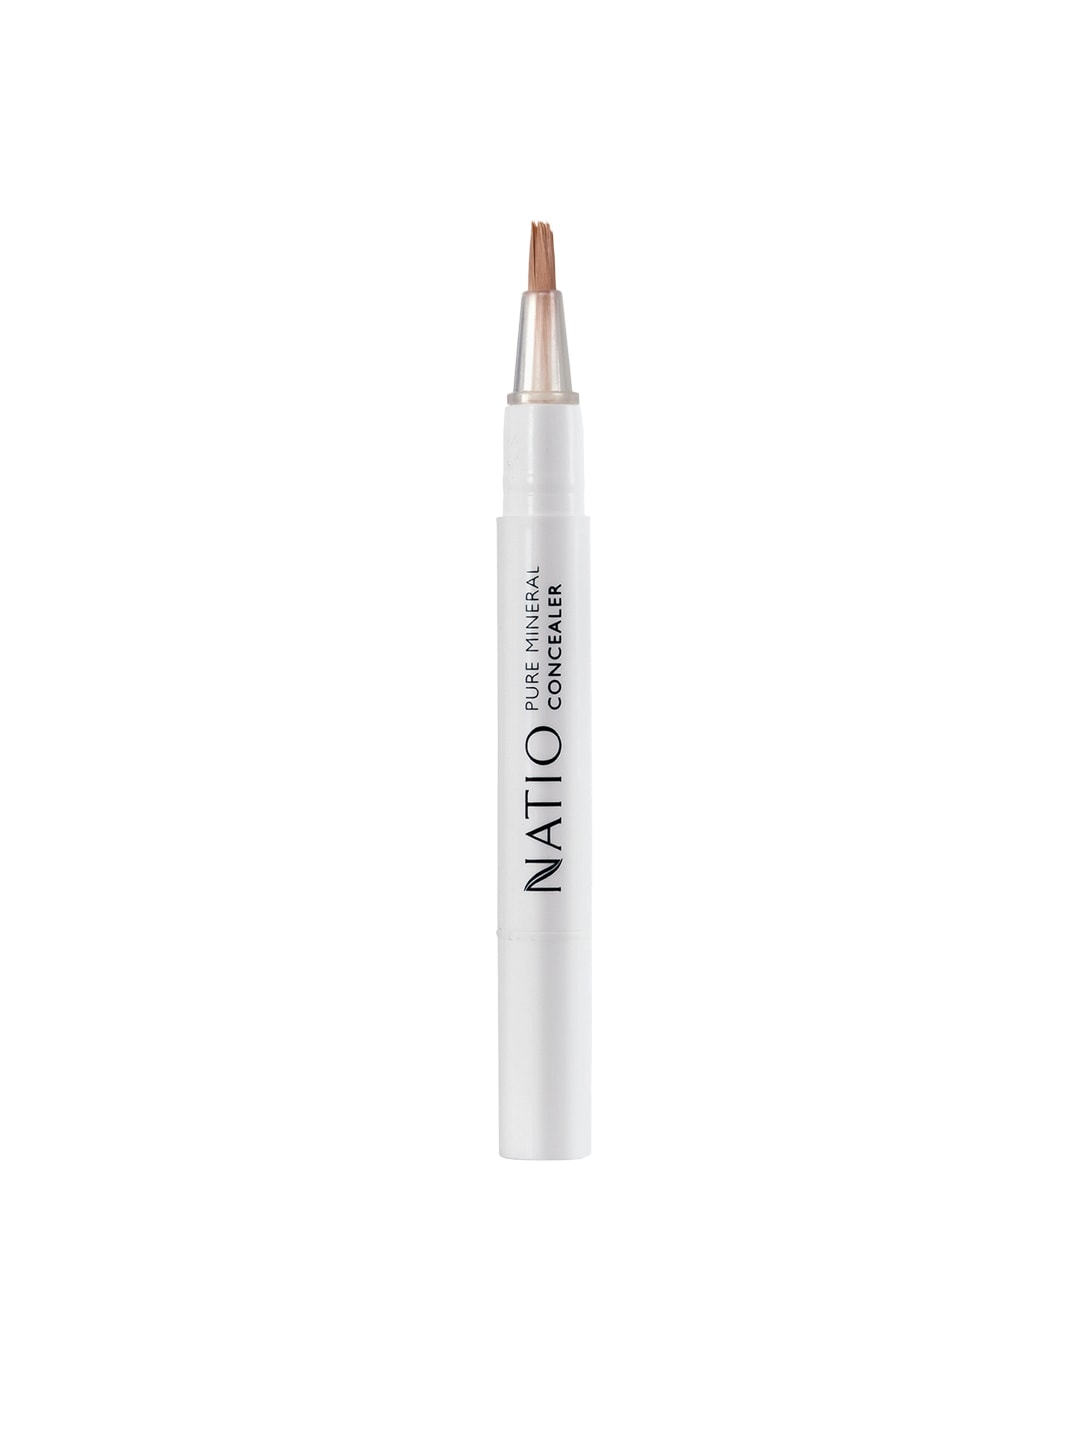 Natio Pure Mineral Concealer Medium Dark